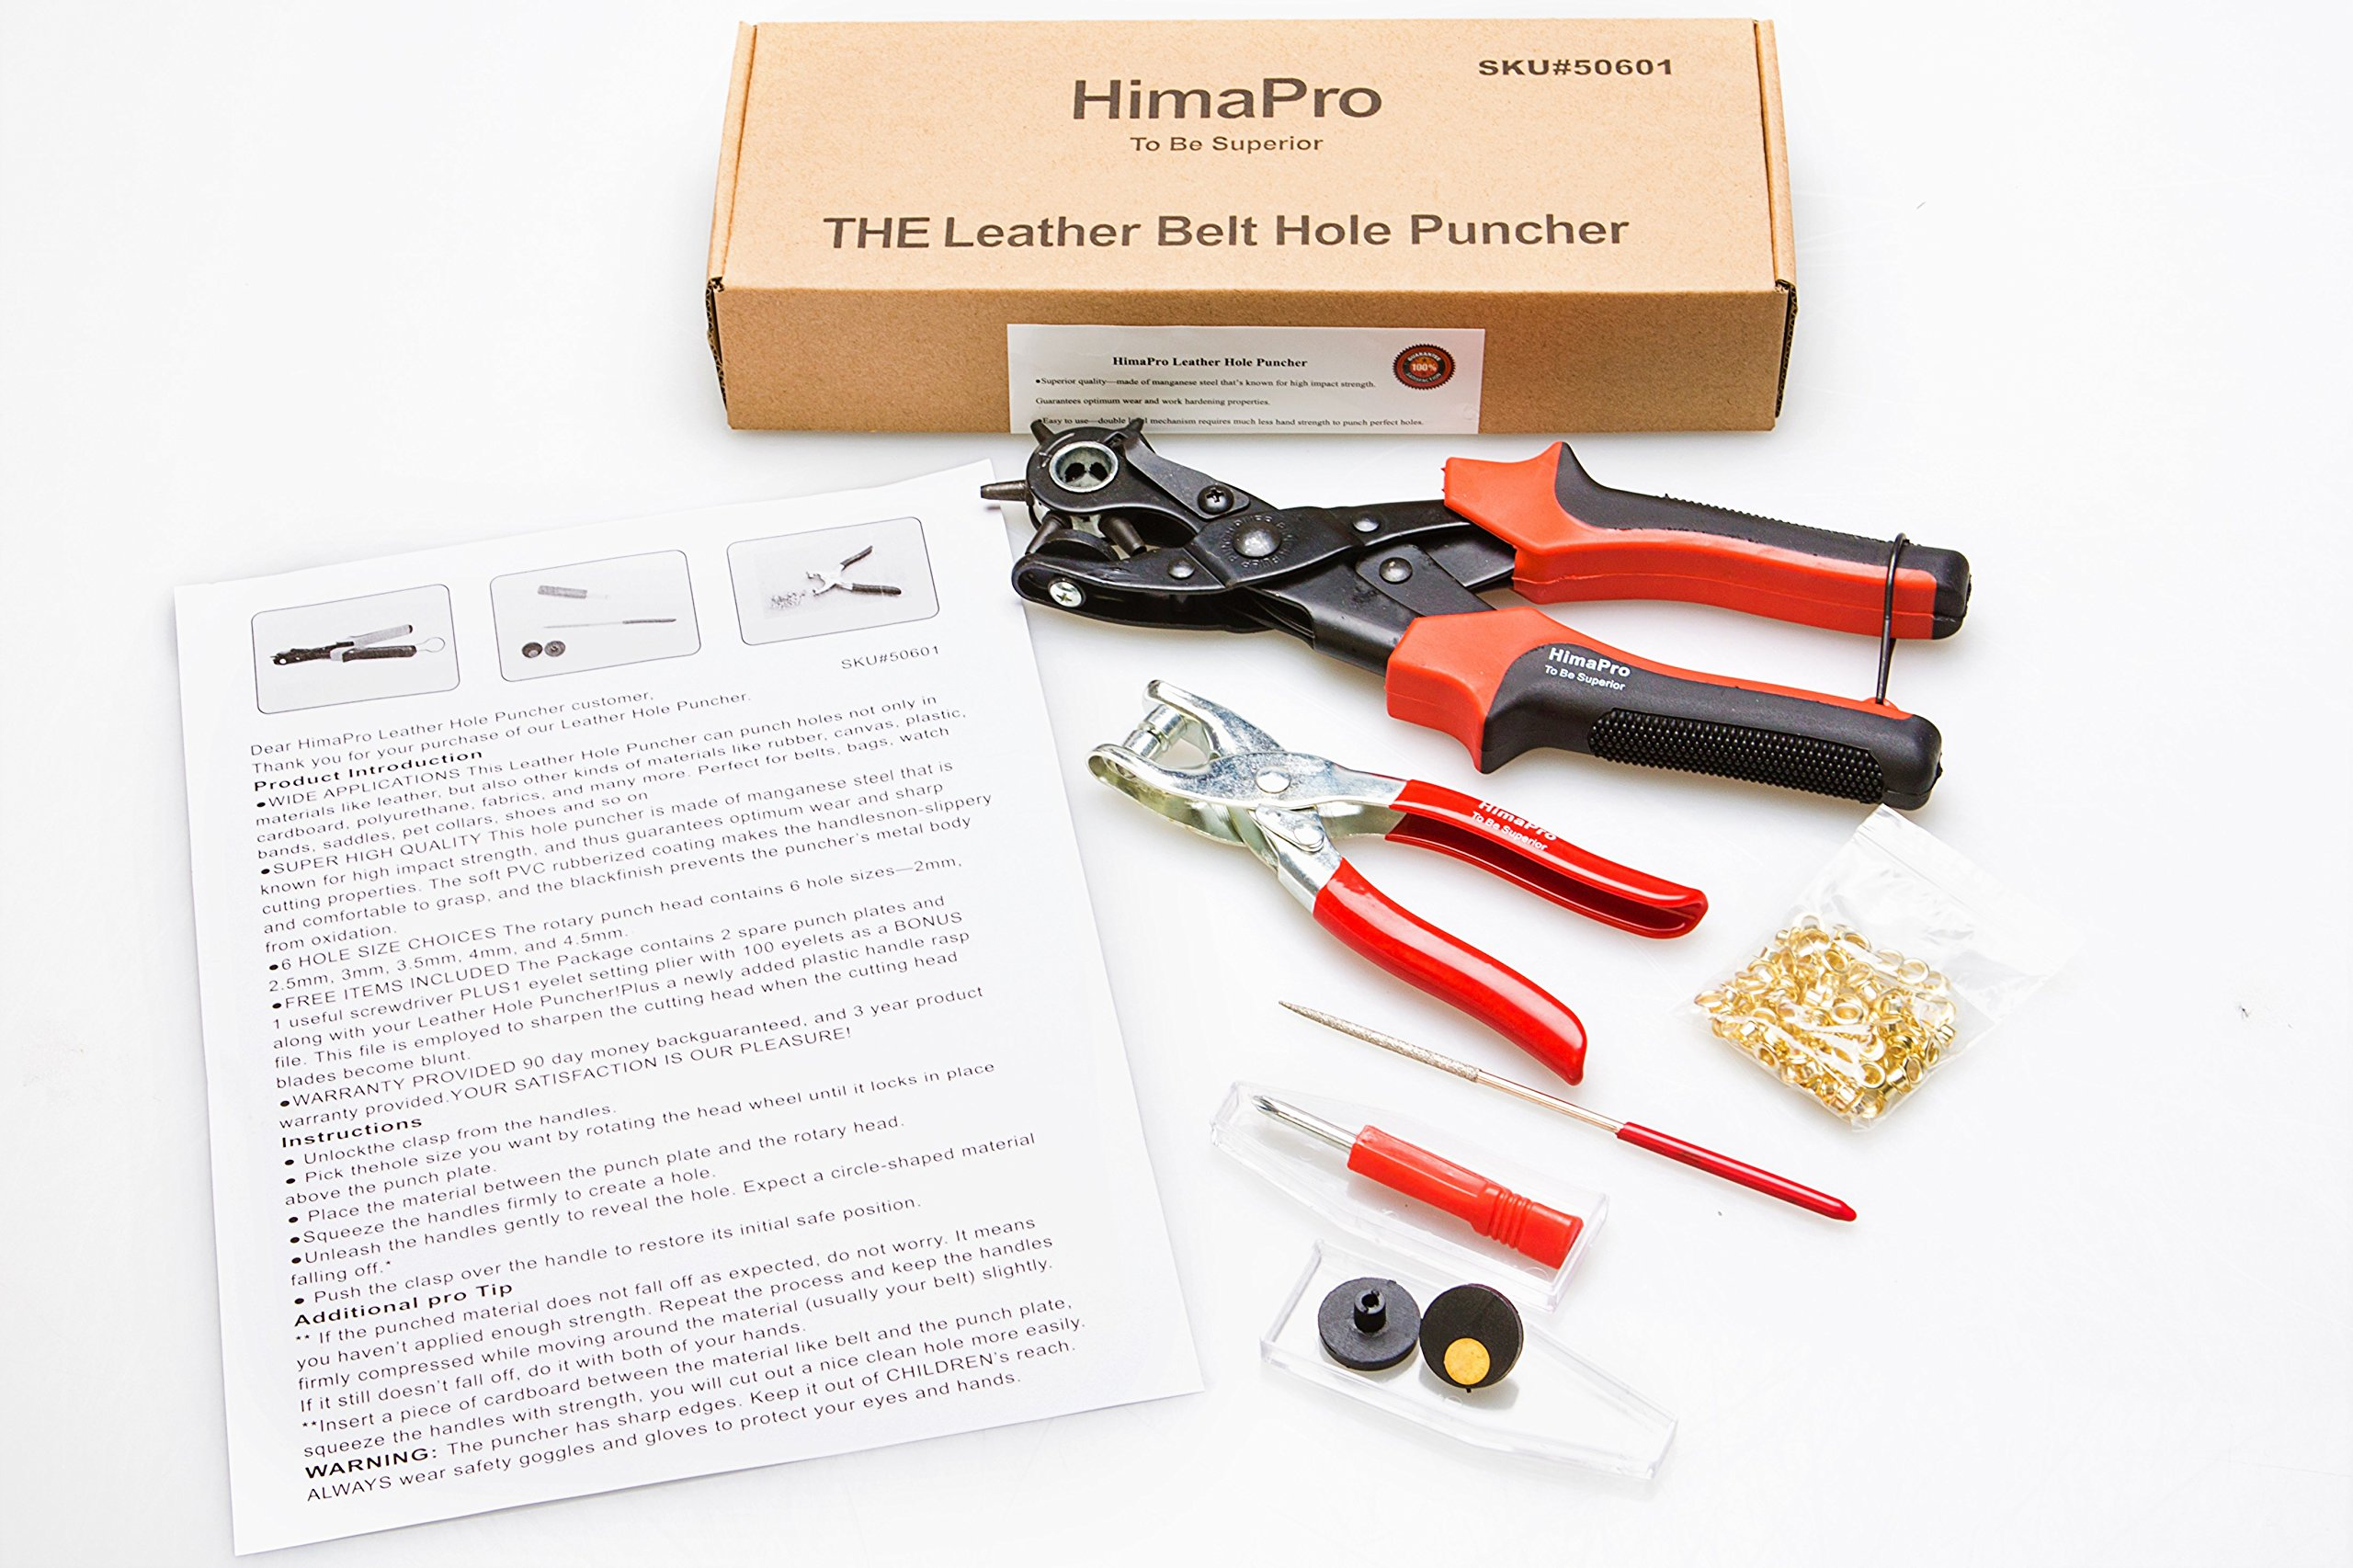 HimaPro Leather Belt Hole Punch Belt Hole Puncher Leather Hole Punch Tool Heavy Duty Rotary Puncher Revolving Belt Hole Punch Plier for Belts Saddles Watch Bands Pet Collars Paper Cardboard by HimaPro (Image #9)